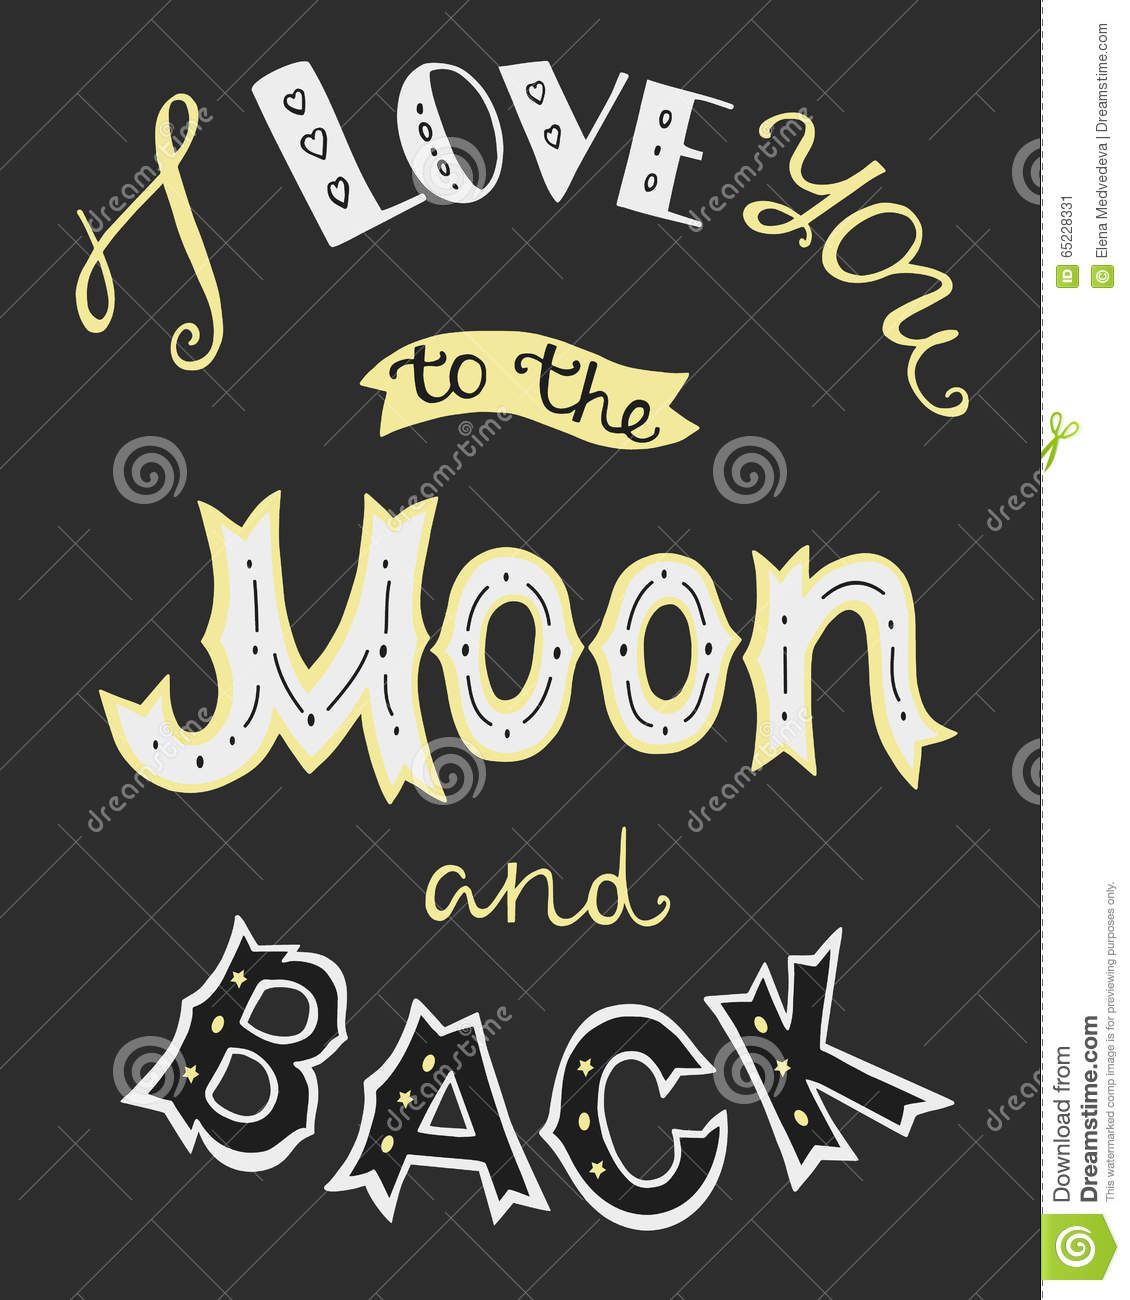 Quote I Love You To The Moon And Back I Love You To The Moon And Back Stock Vector  Image 65228331